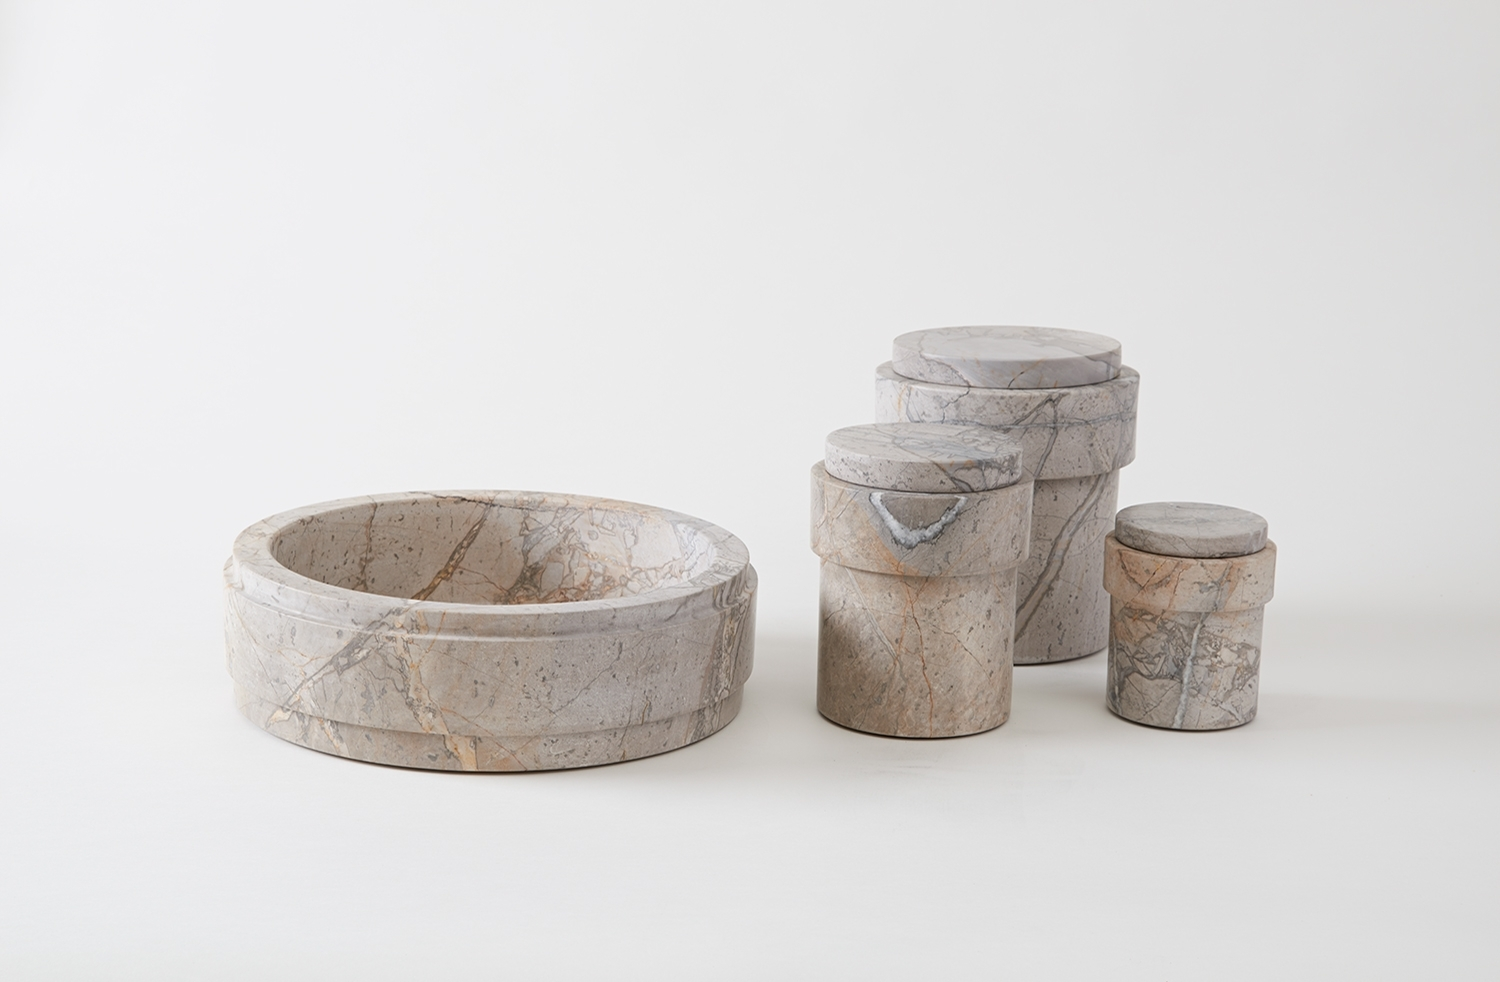 The  Kitchen Collection  in Grigio Antico Chiaro marble by Michael Verheyden for MARCH.